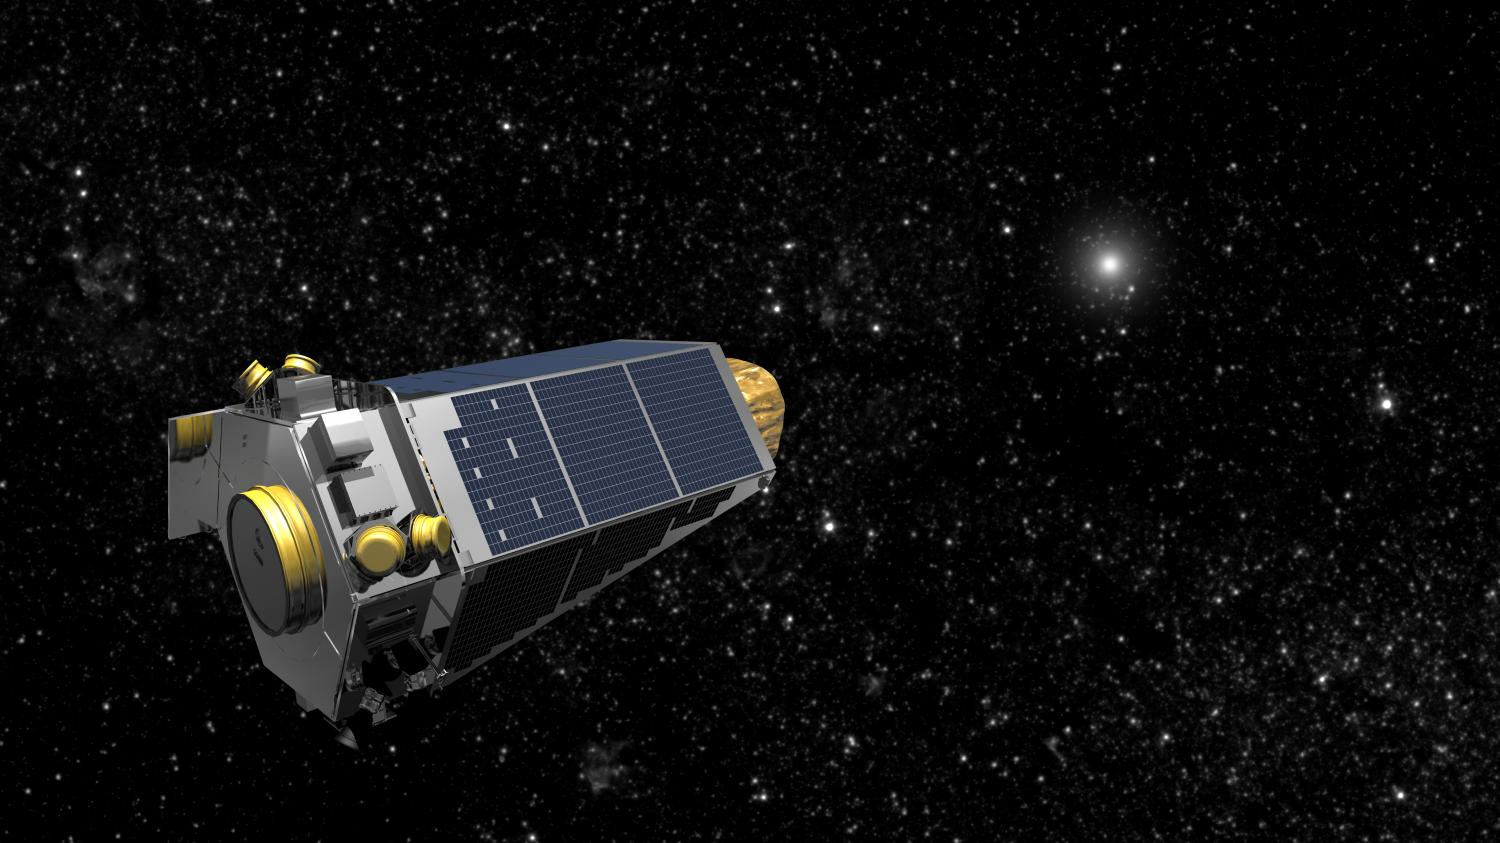 NASA's planet-hunting Kepler Space Telescope will soon 'die'